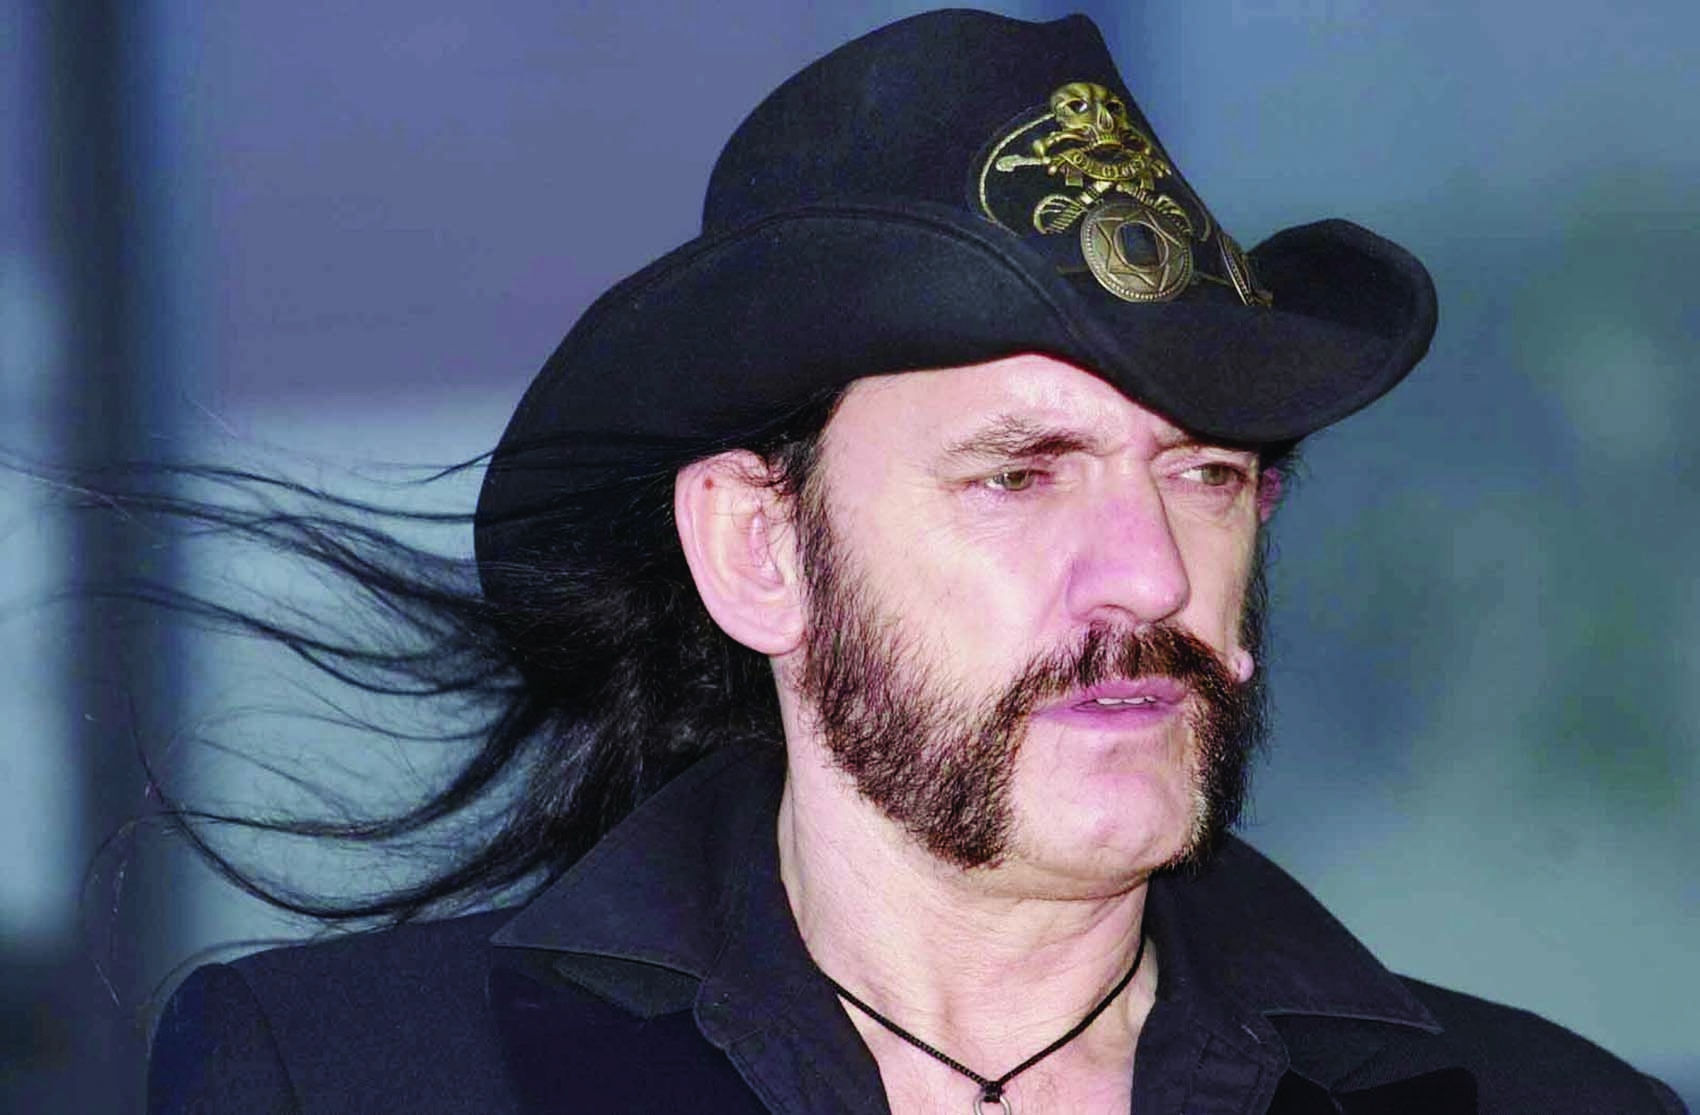 Motorhead frontman Lemmy dead at 70 | The Asian Age Online